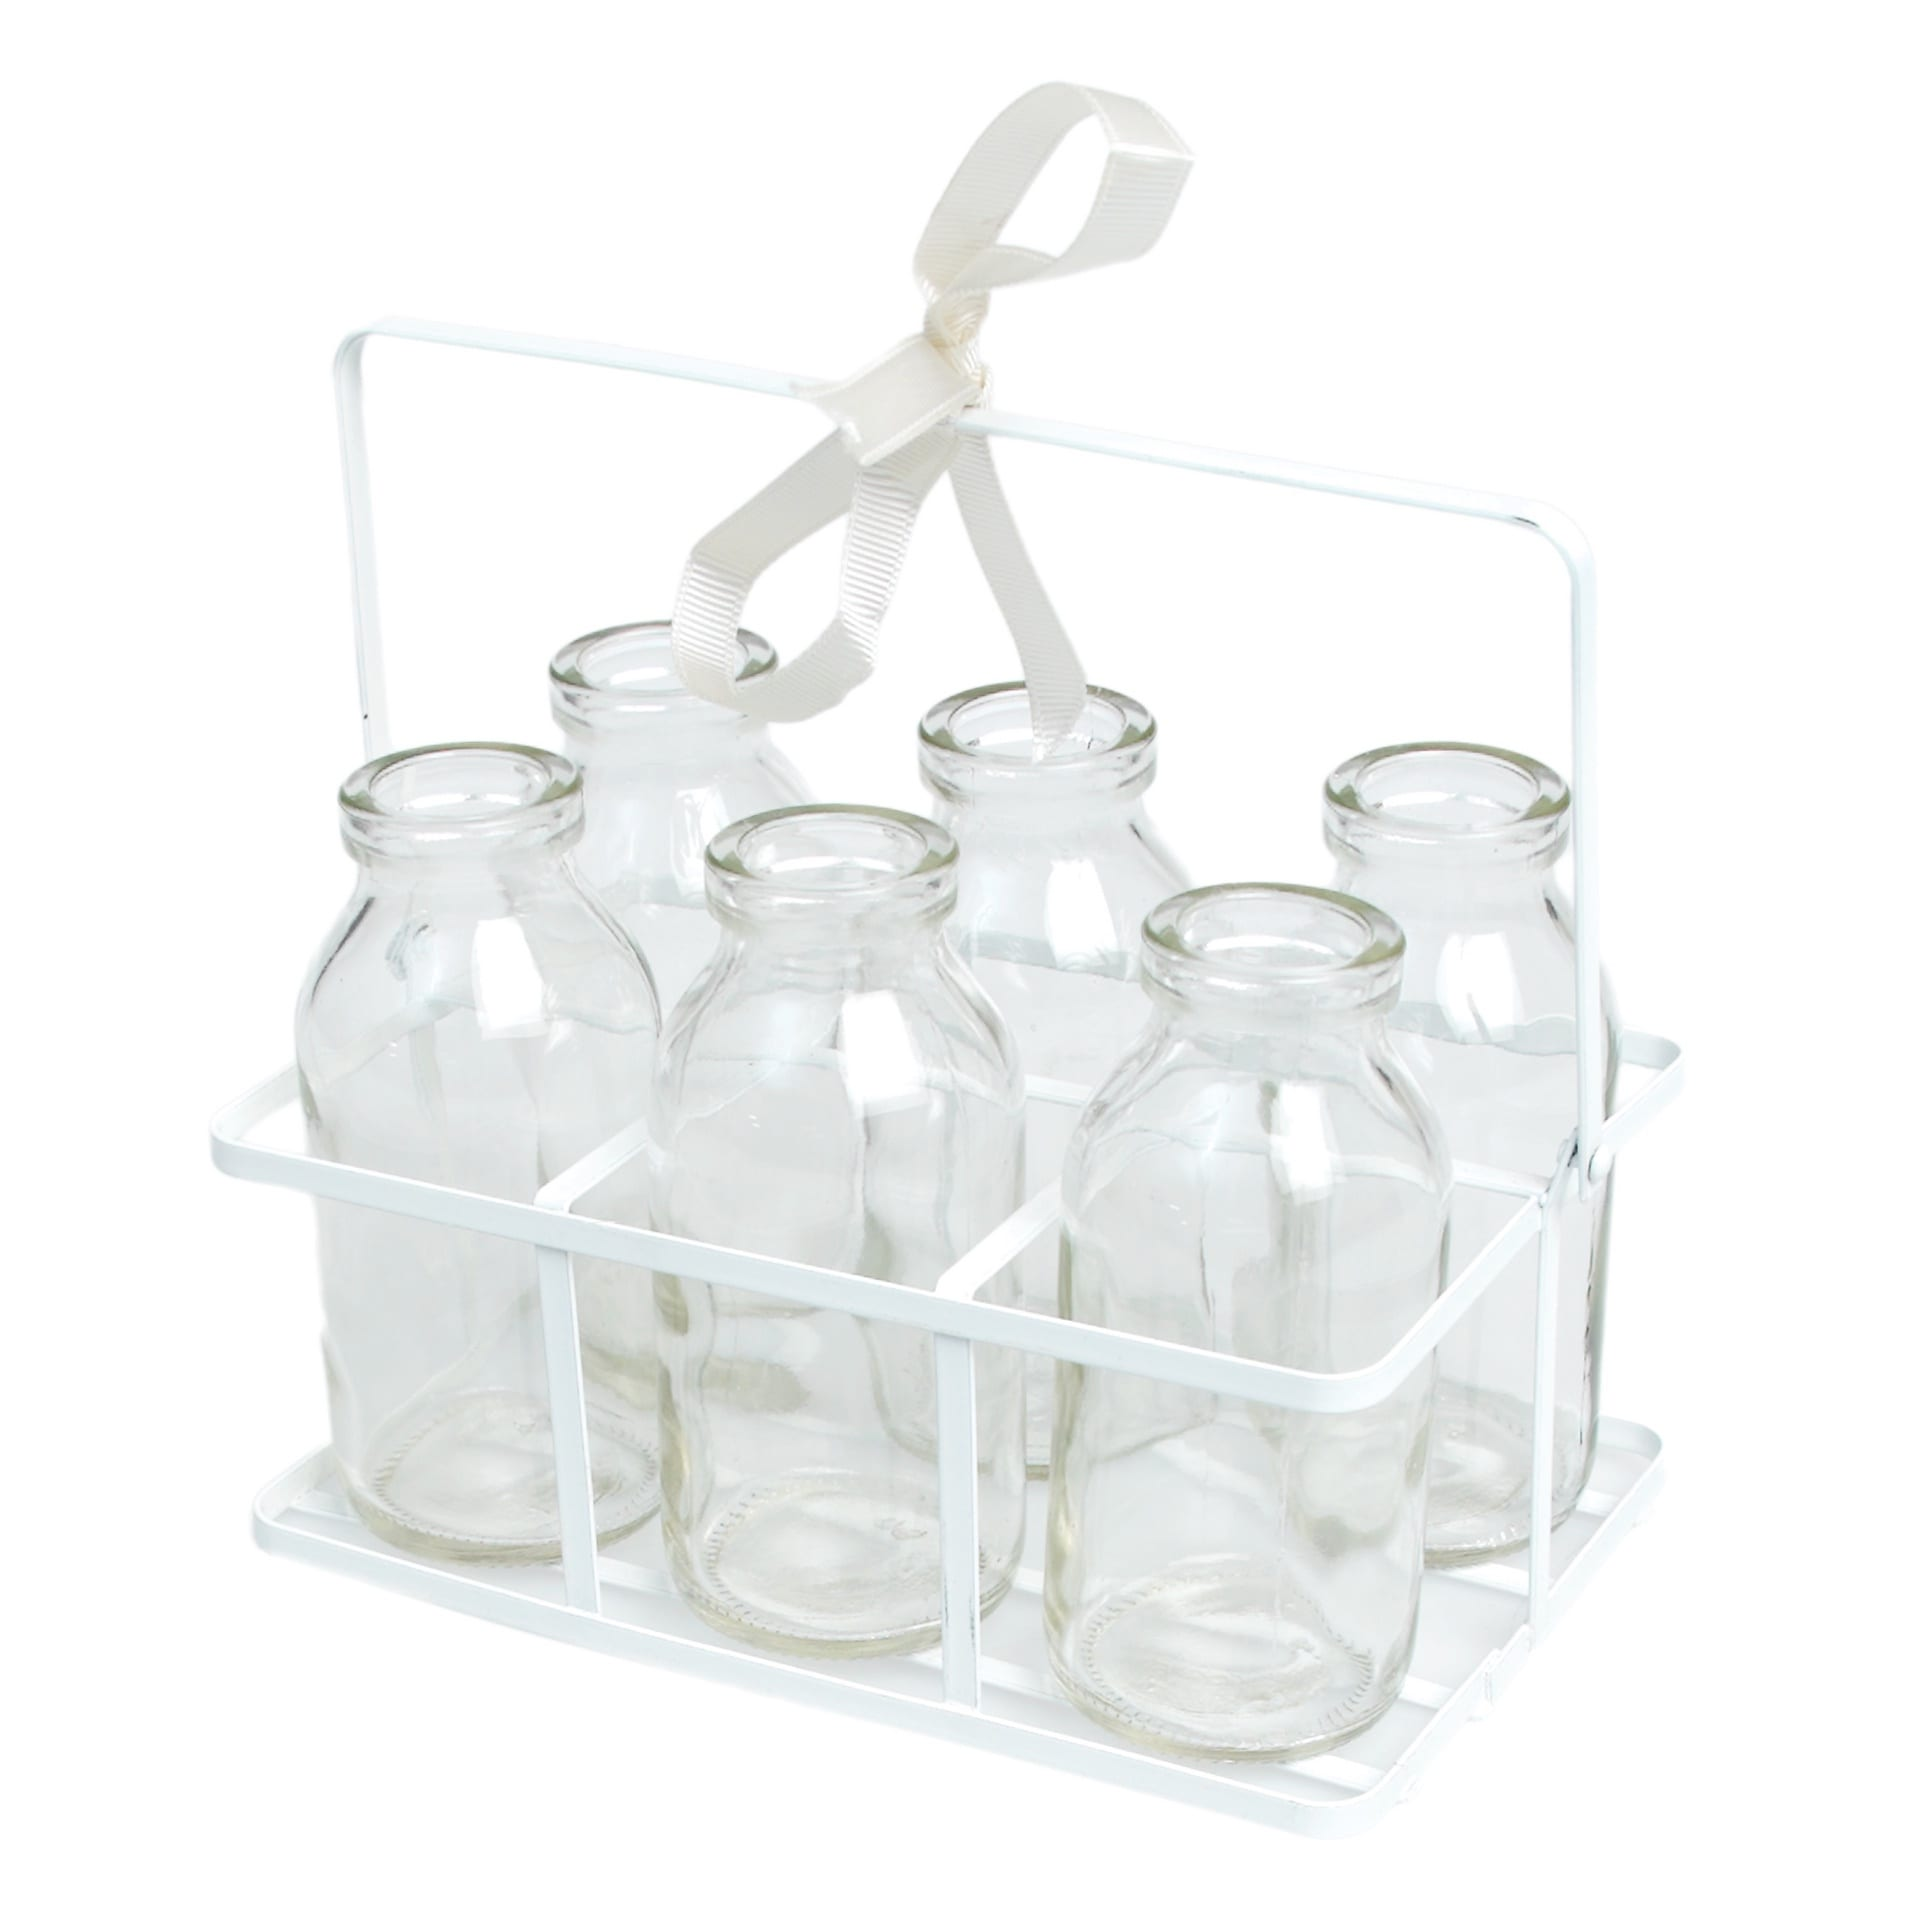 Crate of six glass milk bottles